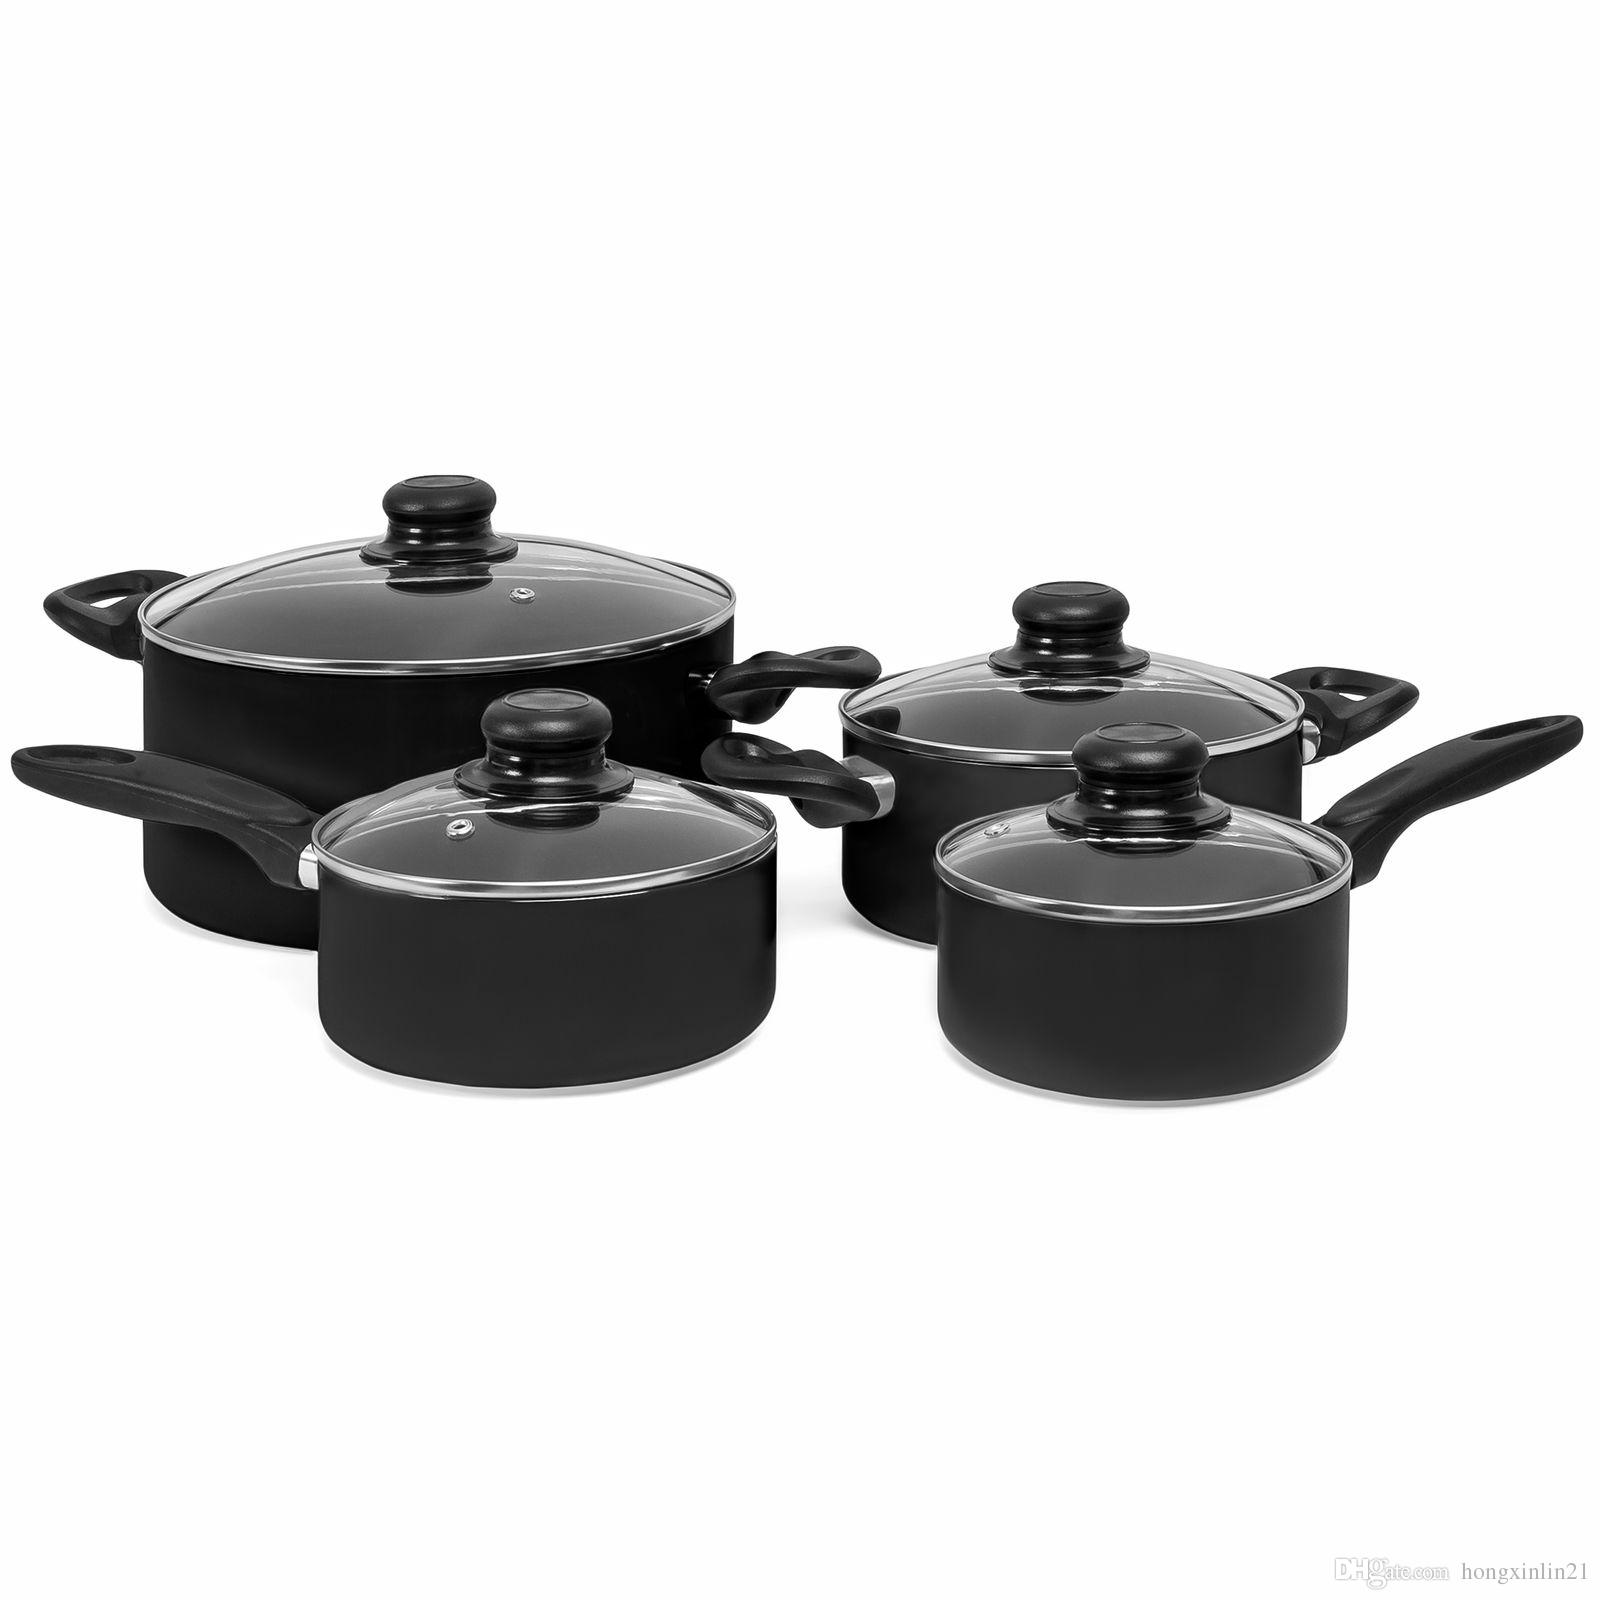 Nonstick Cookware Set Kitchen Pots Pans Nonstick With Cooking ...